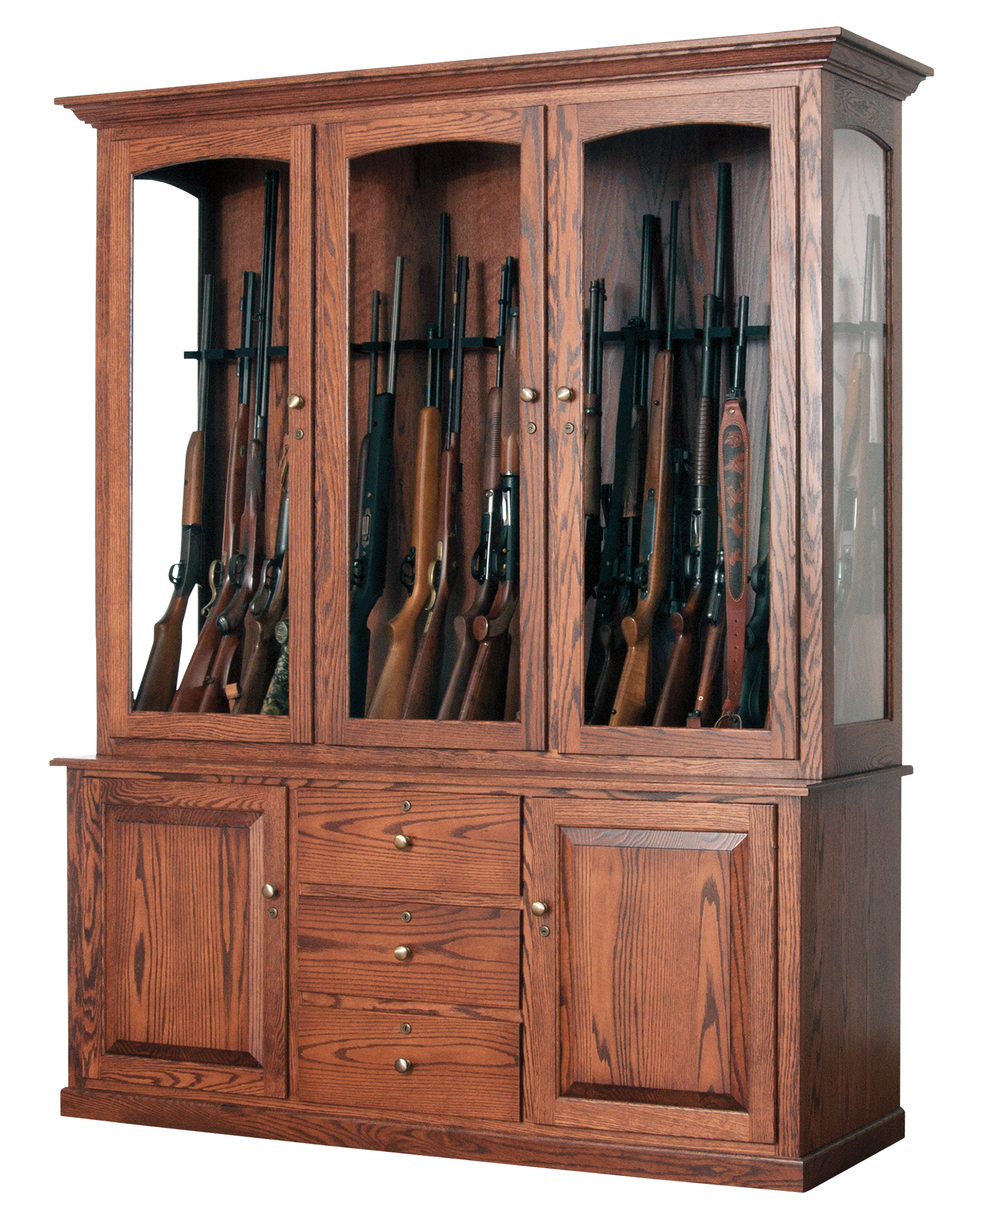 pulaski home with deer etched glass gallery sale gun wood cabinet in for wooden furniture cabinets johnstown decoration